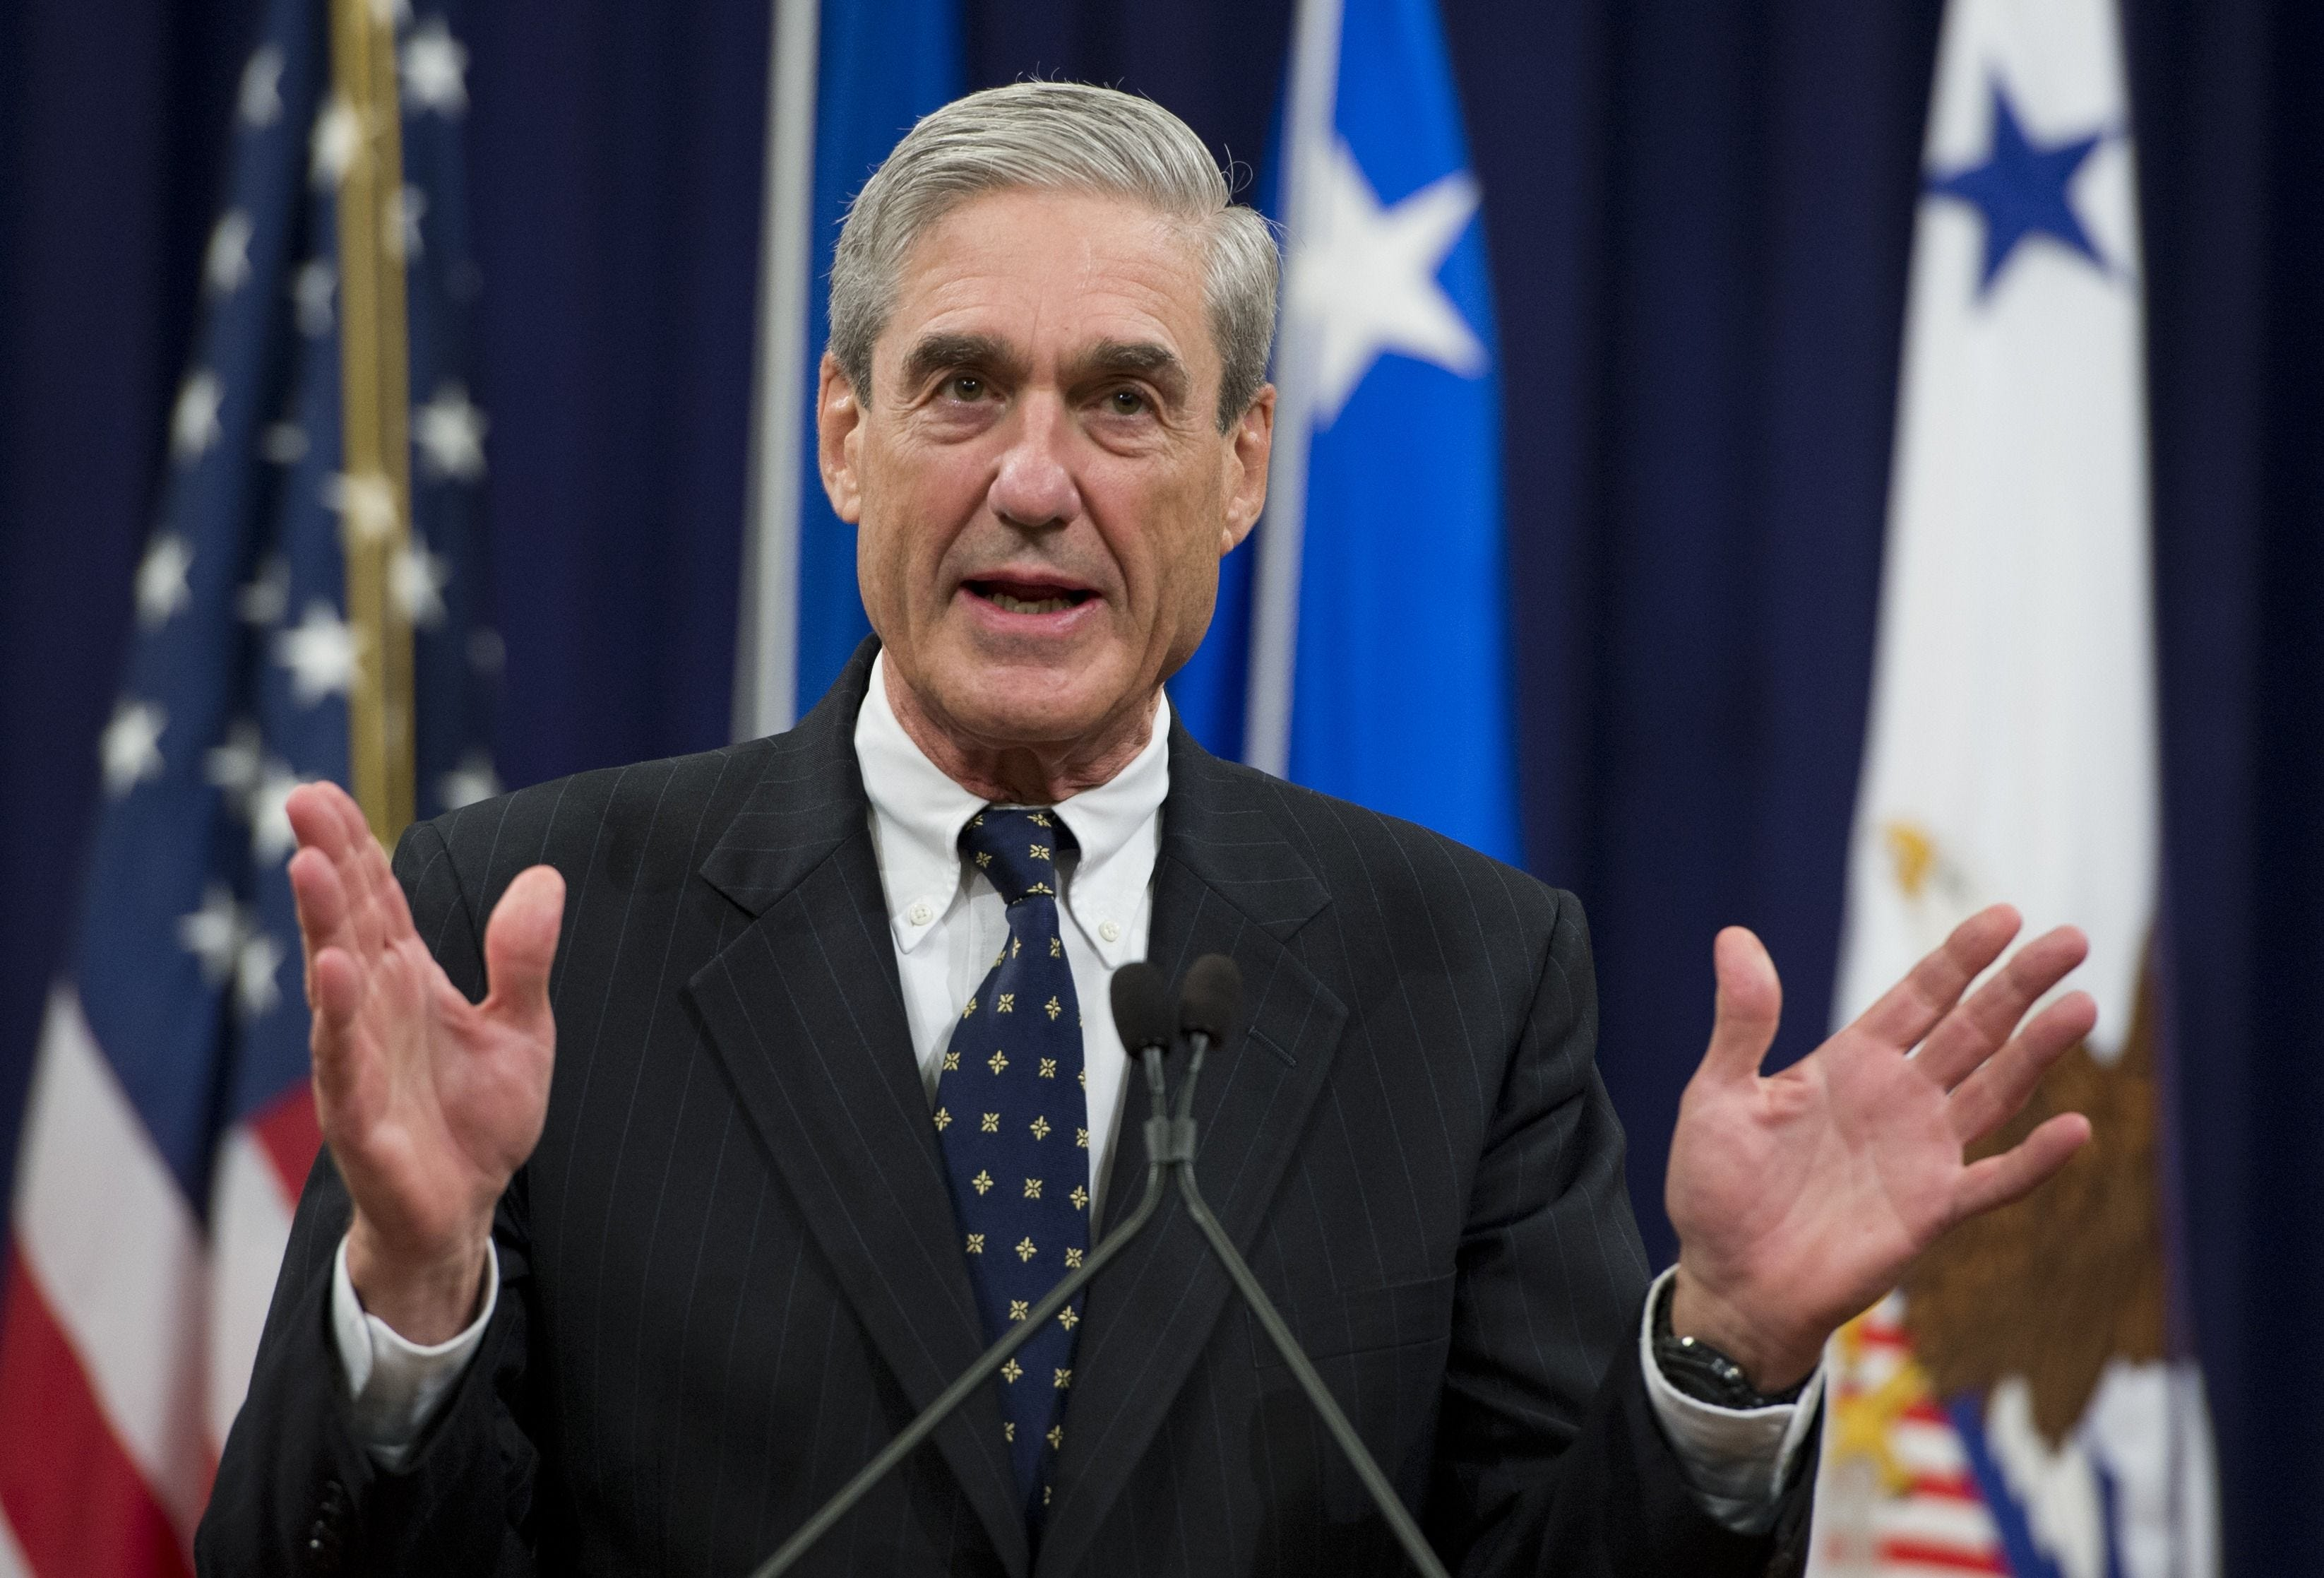 Robert Mueller: Appeals court hears arguments about whether special counsel is legitimate